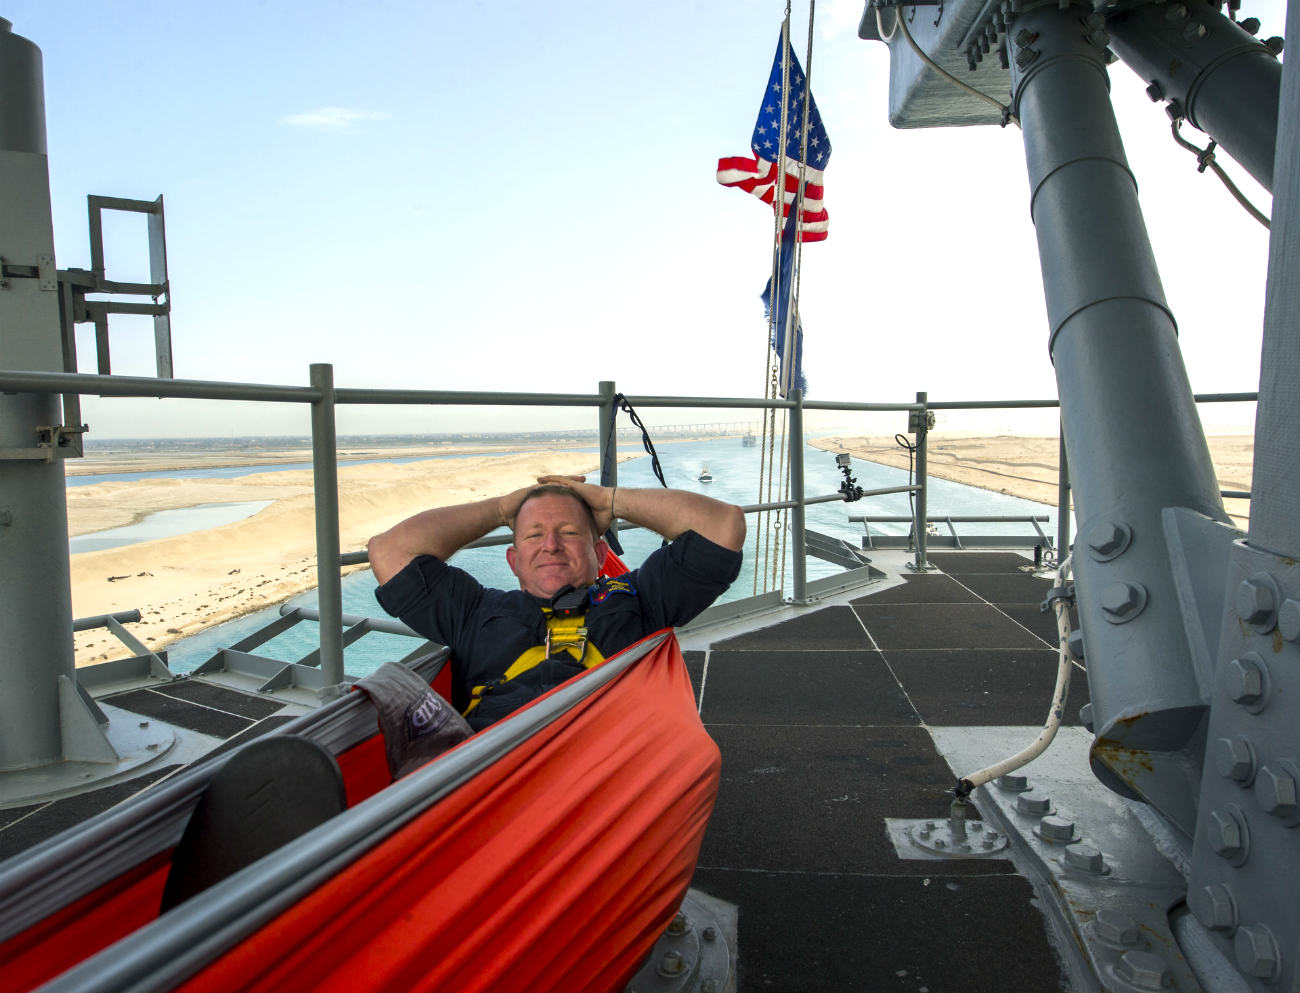 Seamen aircraft carrier images hammock